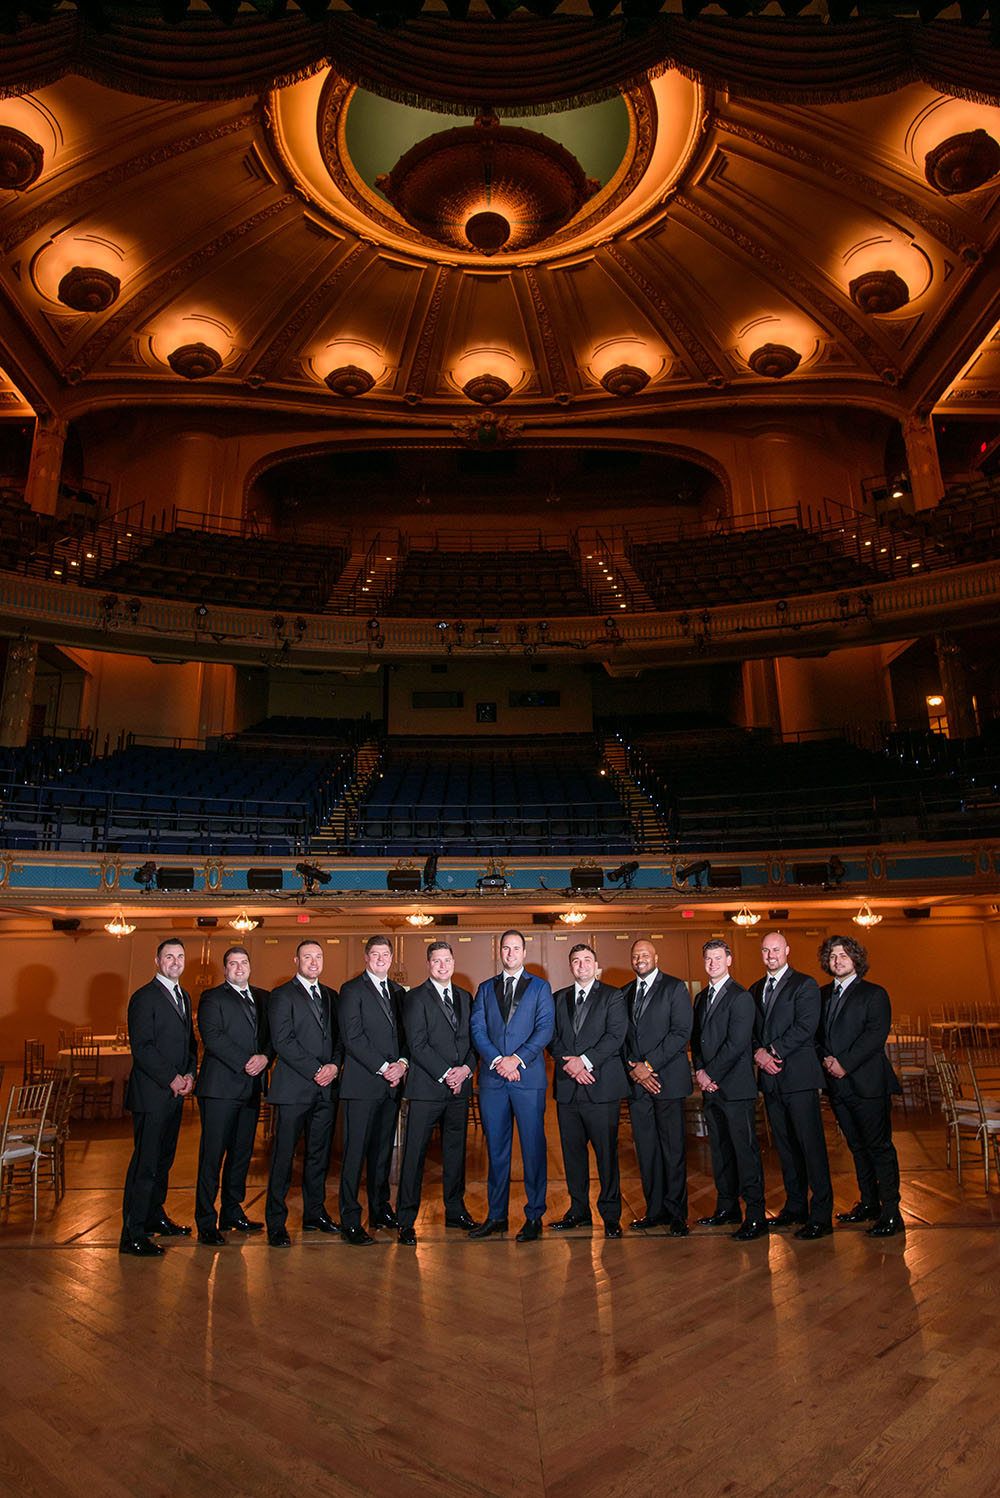 Groom and groomsmen pose at the orpheum